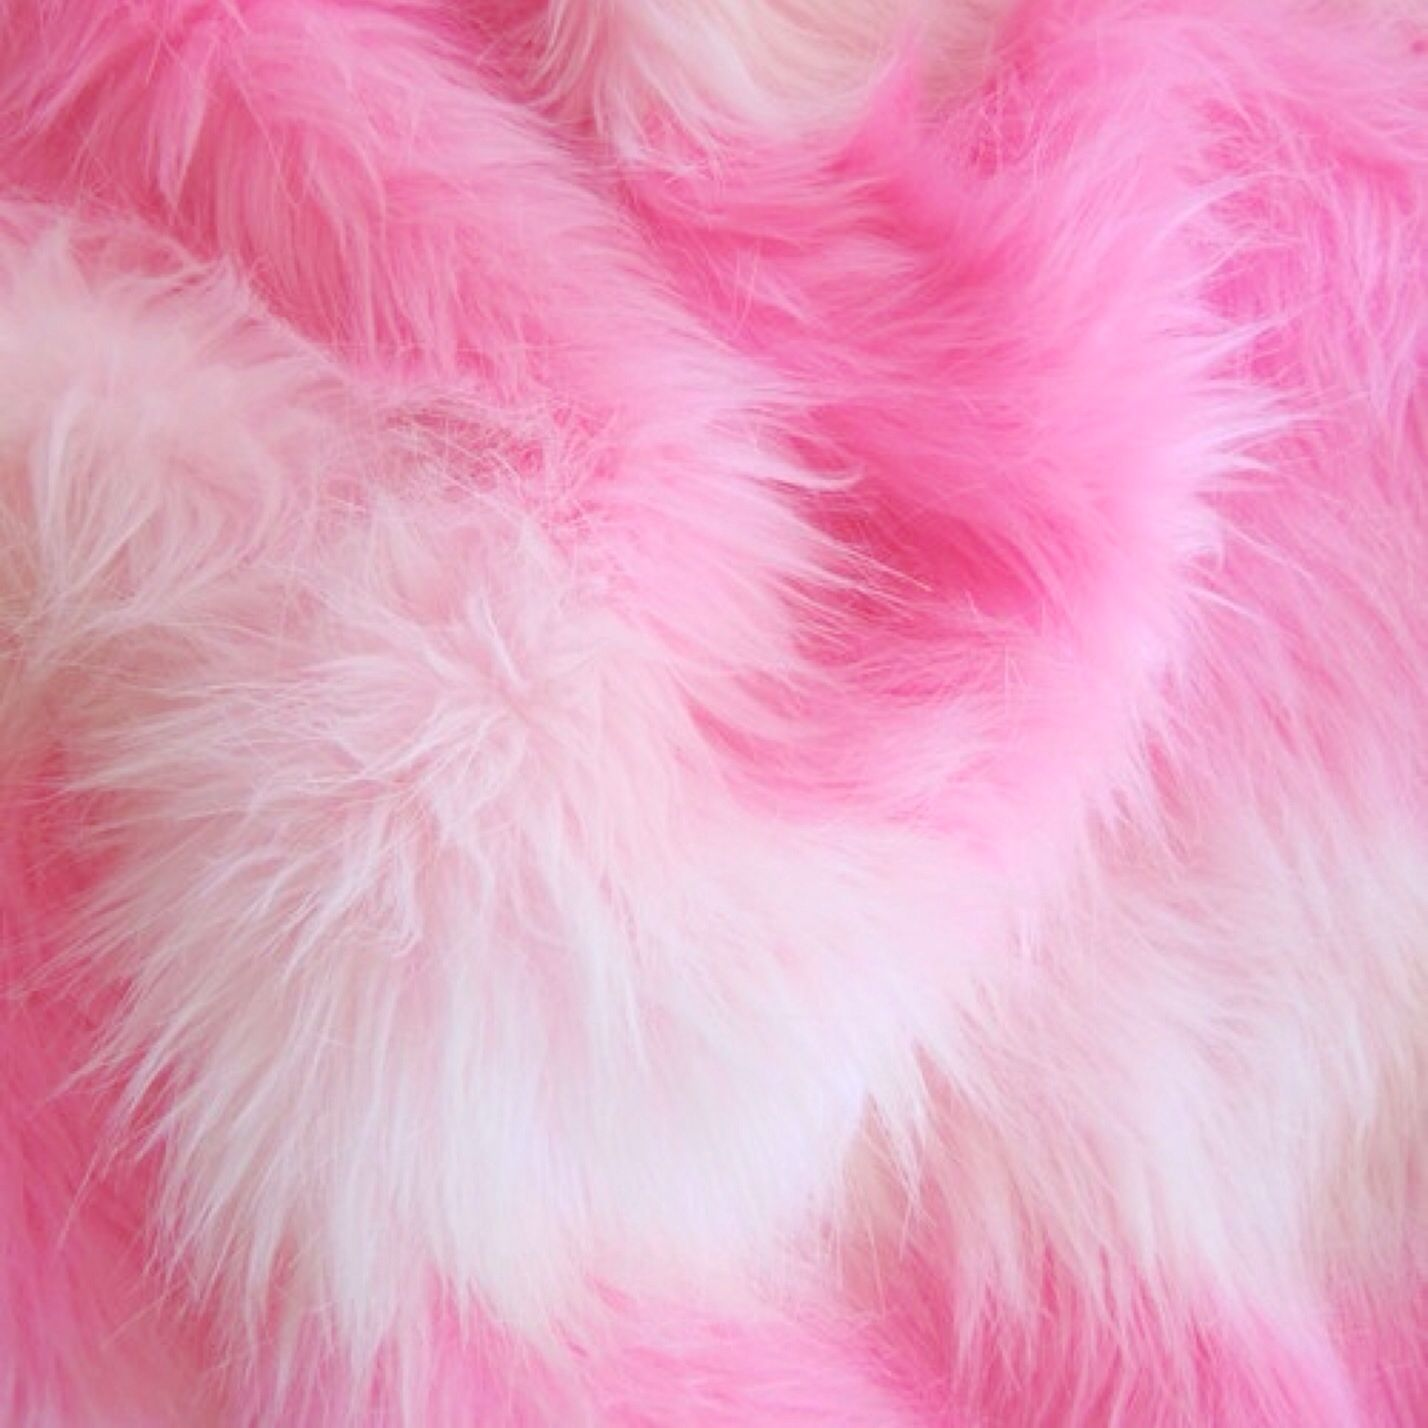 Pinky fur pinky land pinterest fur pink things and for Fur wallpaper tumblr